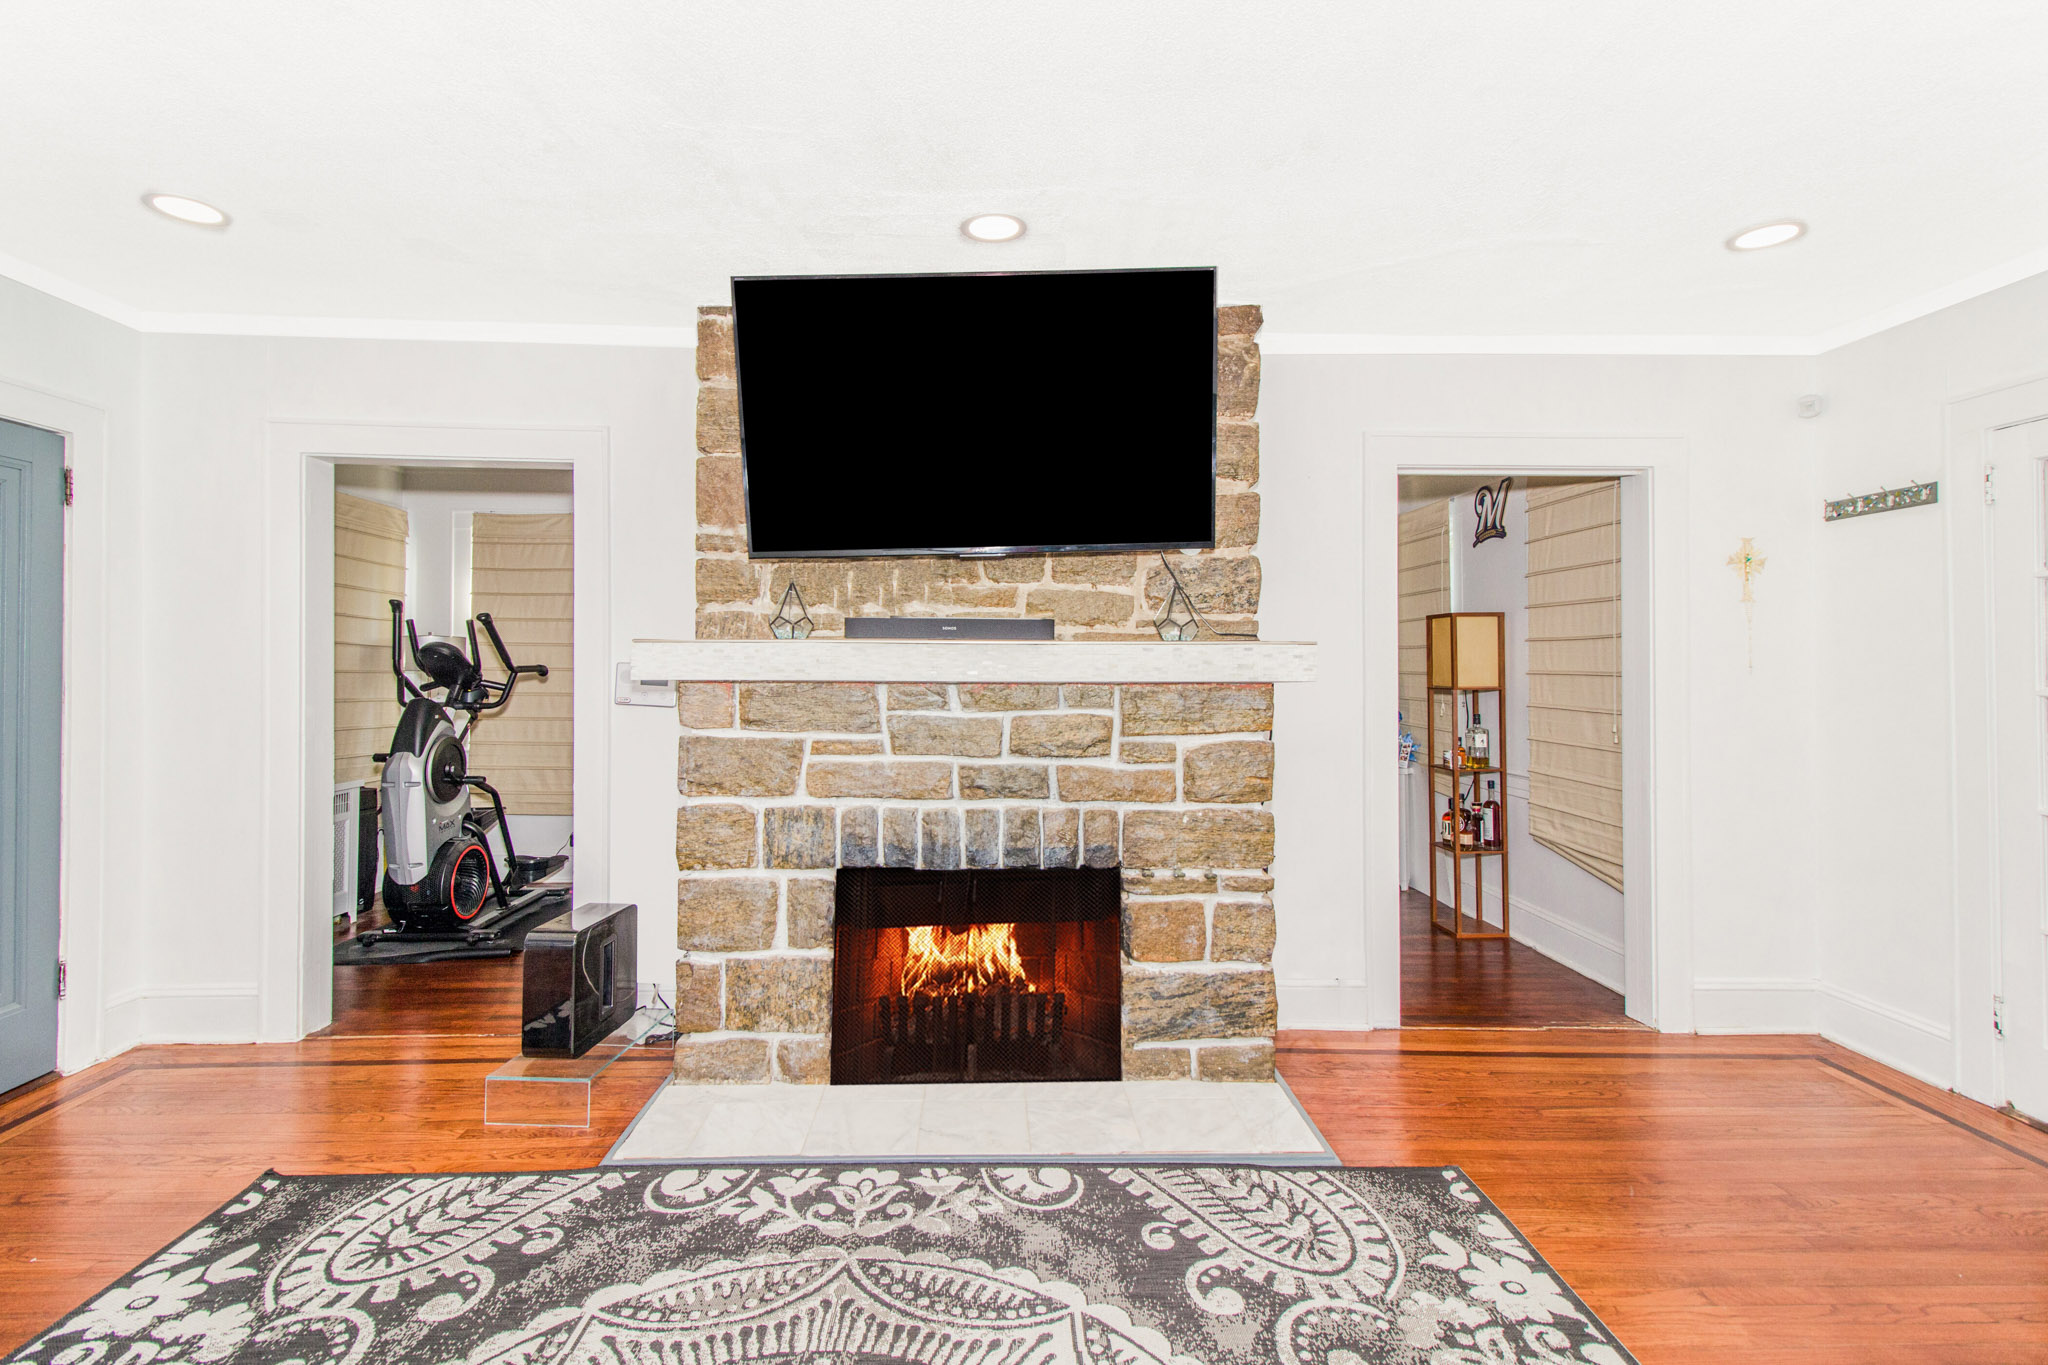 Add Fire to Fireplaces After